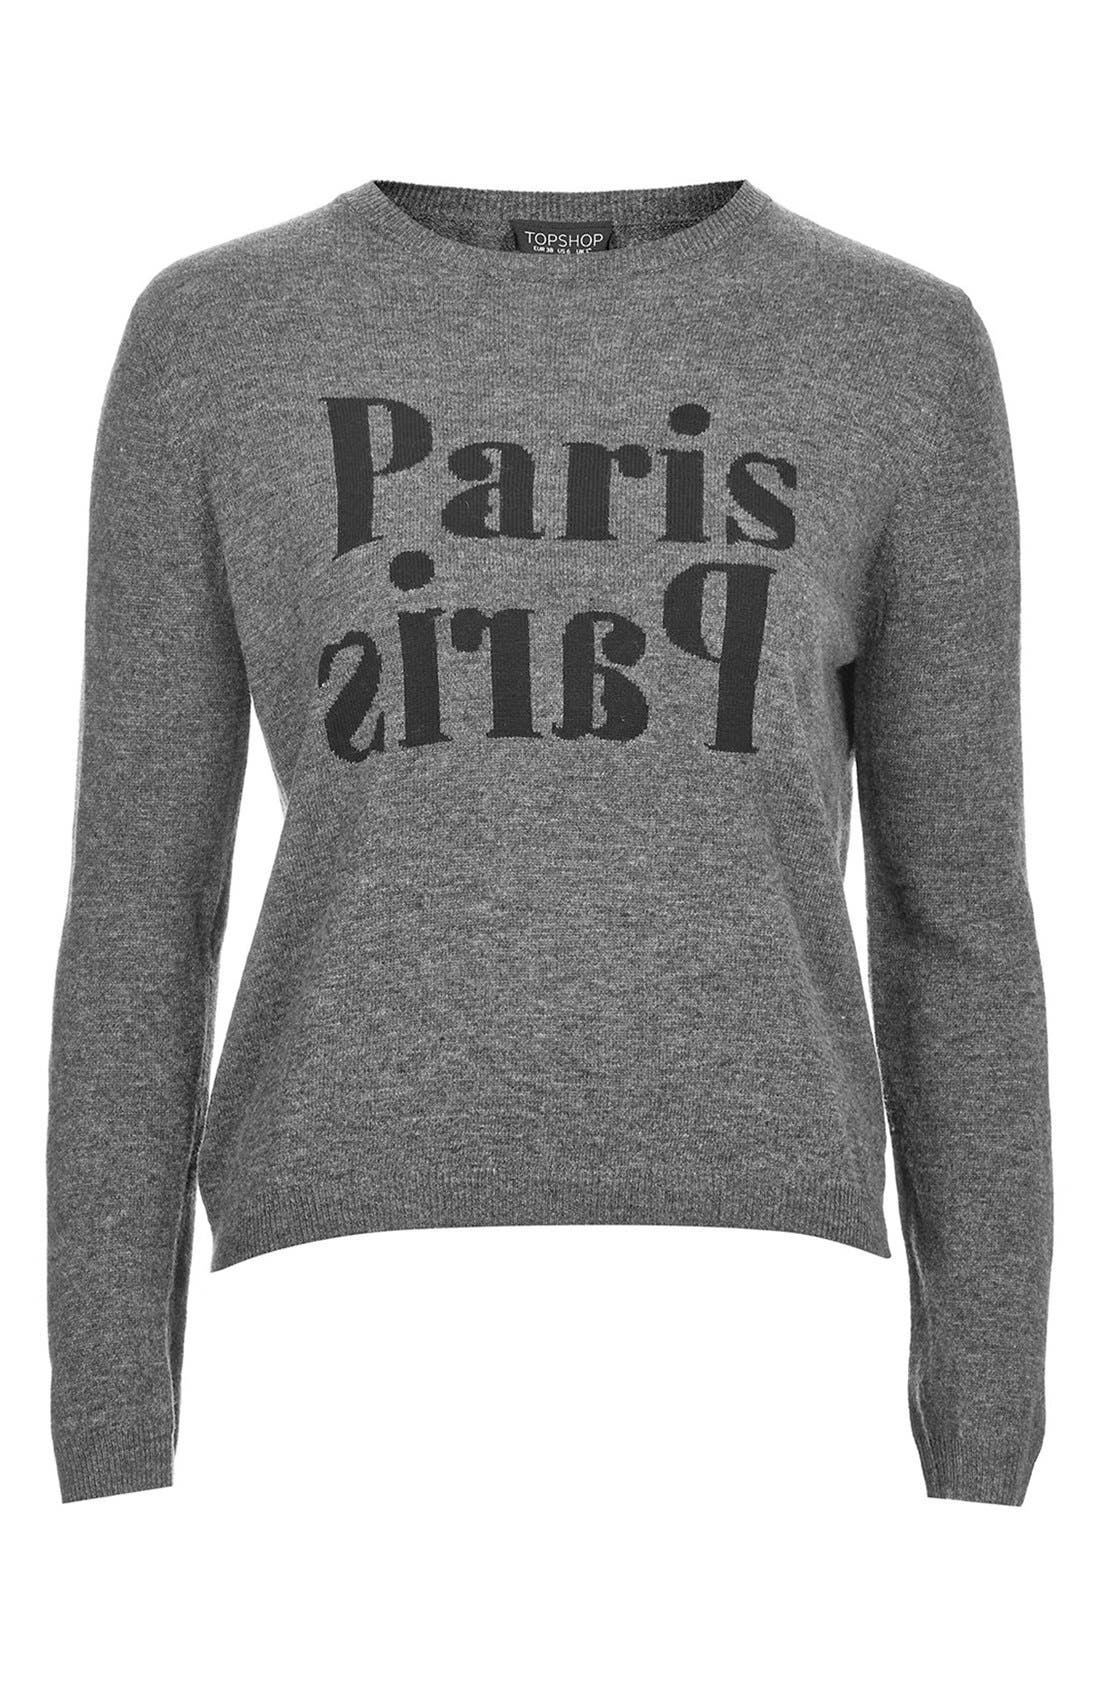 Alternate Image 3  - Topshop 'Paris, Paris' Crewneck Sweater